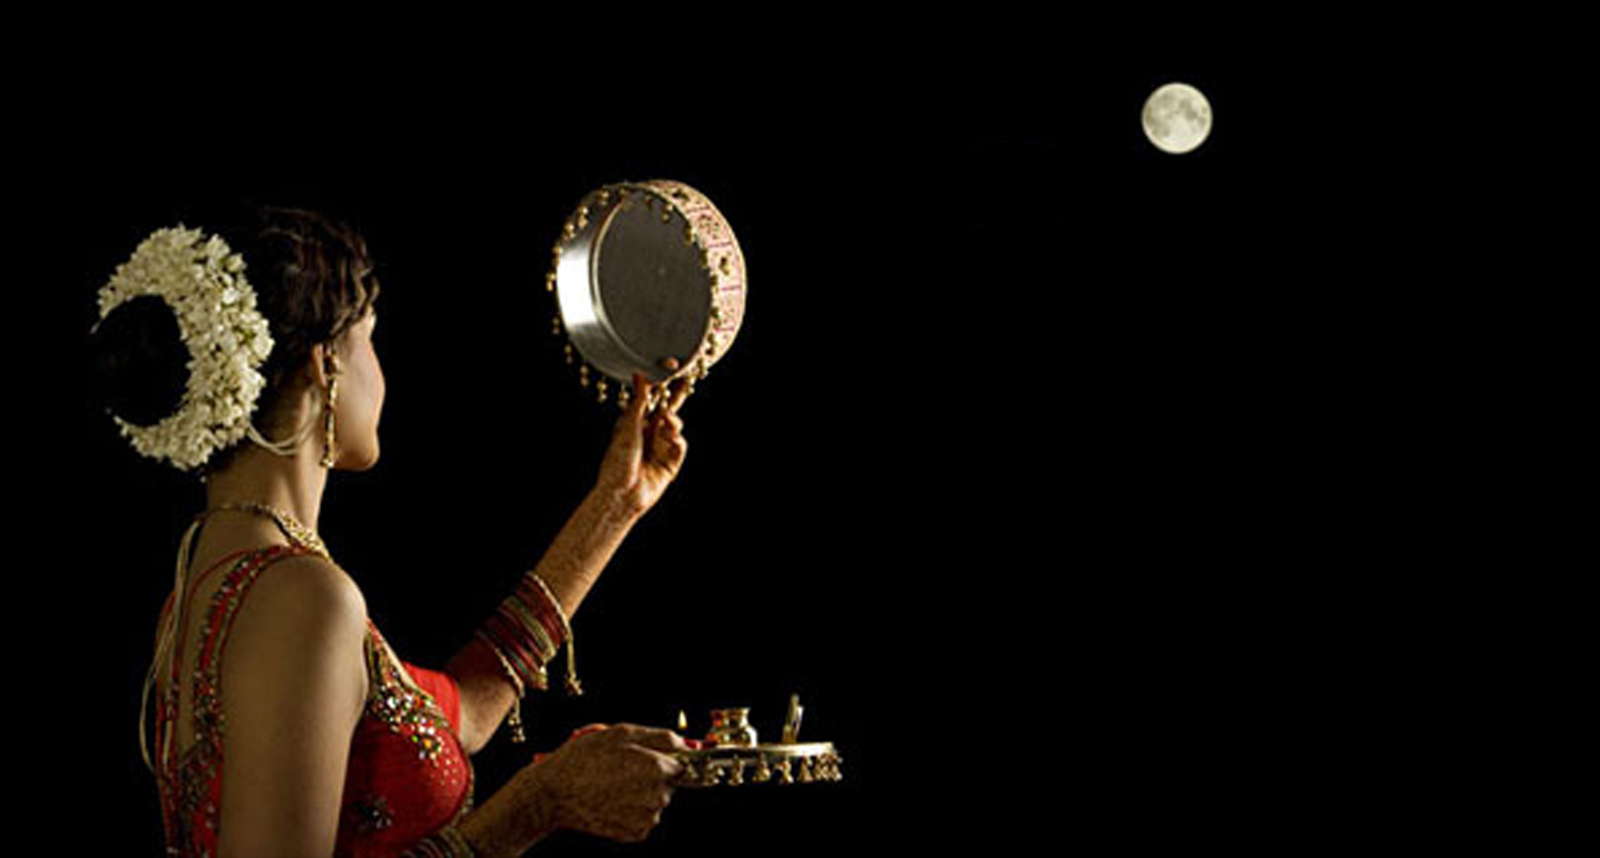 Karwa chauth in india